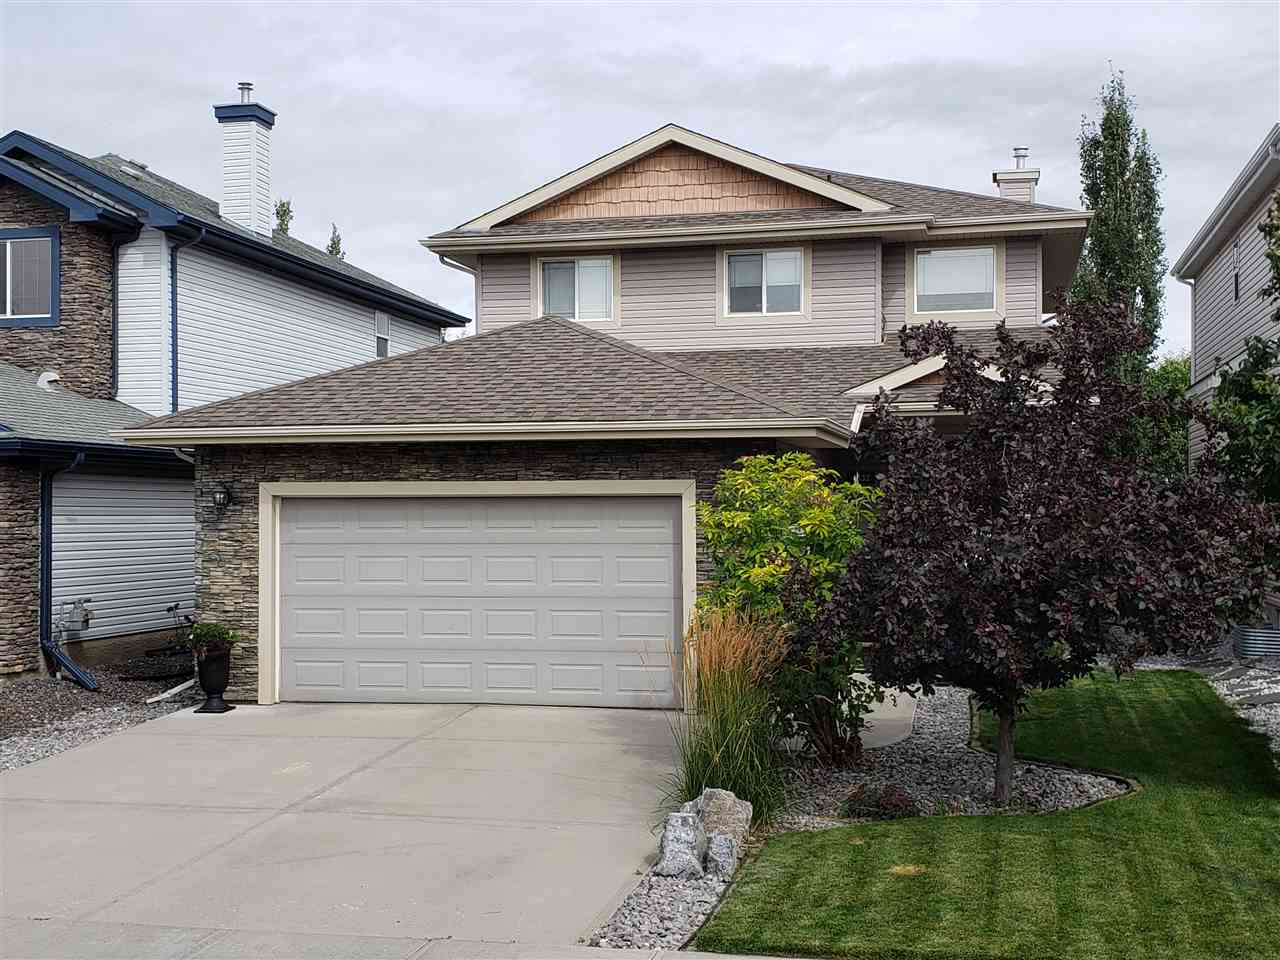 MLS® listing #E4171739 for sale located at 6332 SANDIN Way